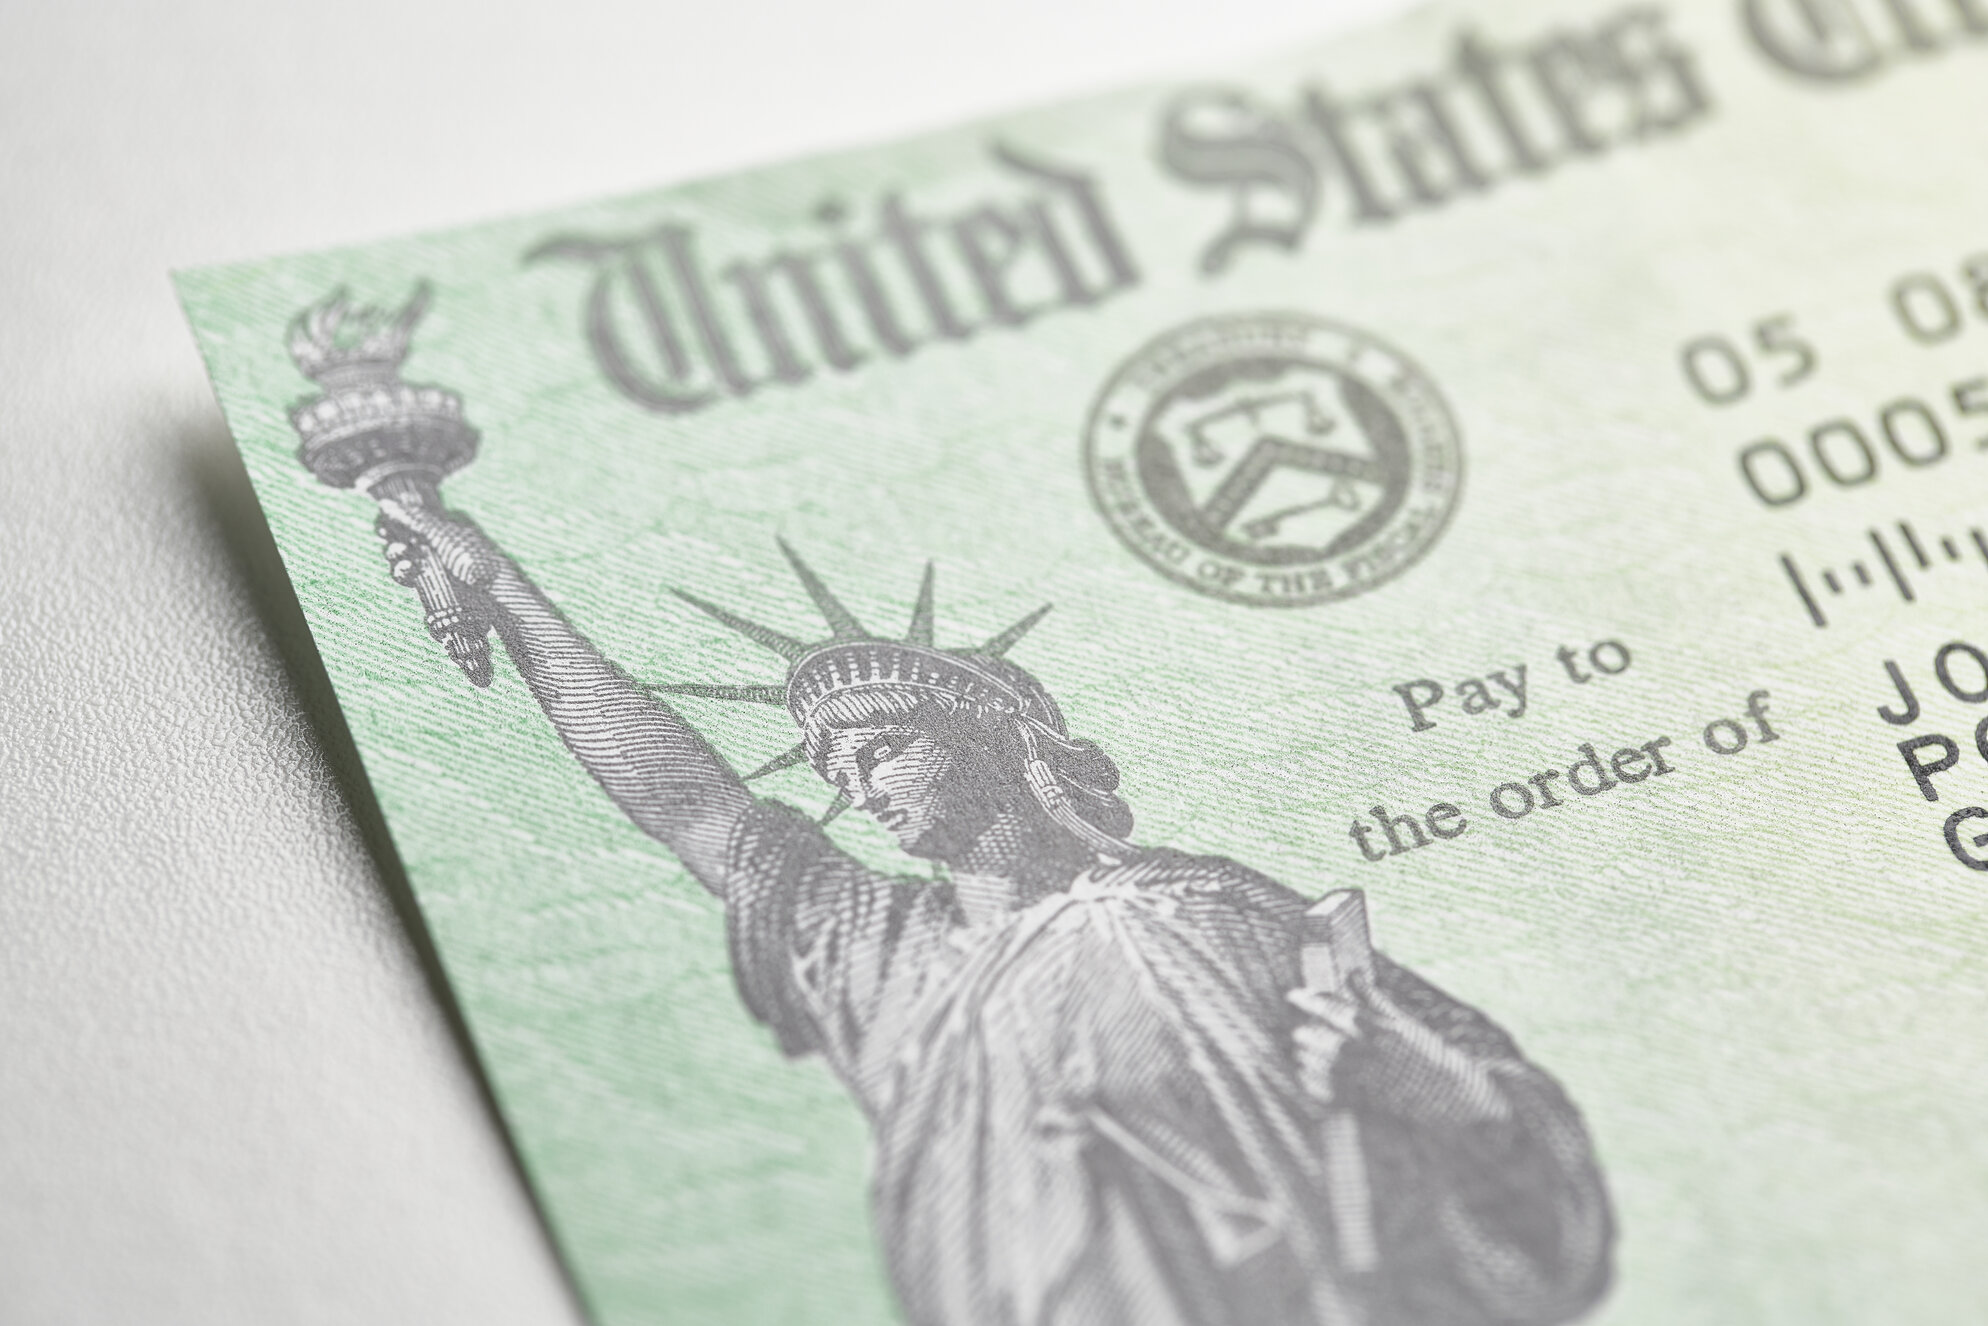 You might be able to get an extra stimulus payment of up to $8,000 for 2021 - here's how - BGR